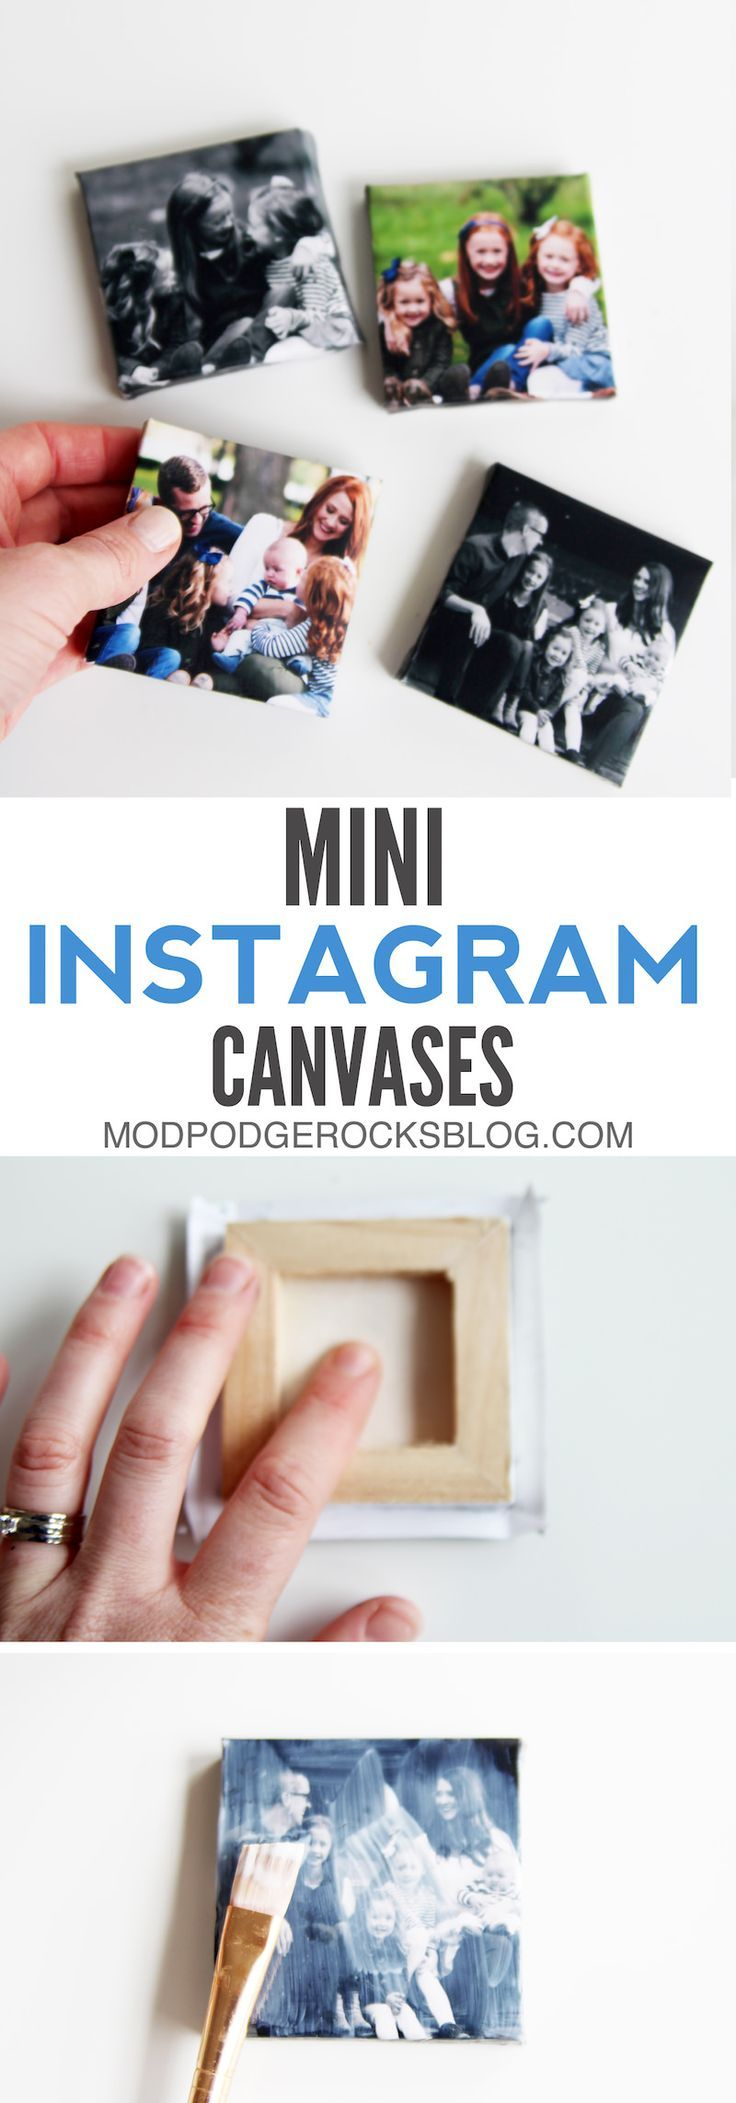 Scrapbook paper dollar general - How To Make Instagram Mini Canvases